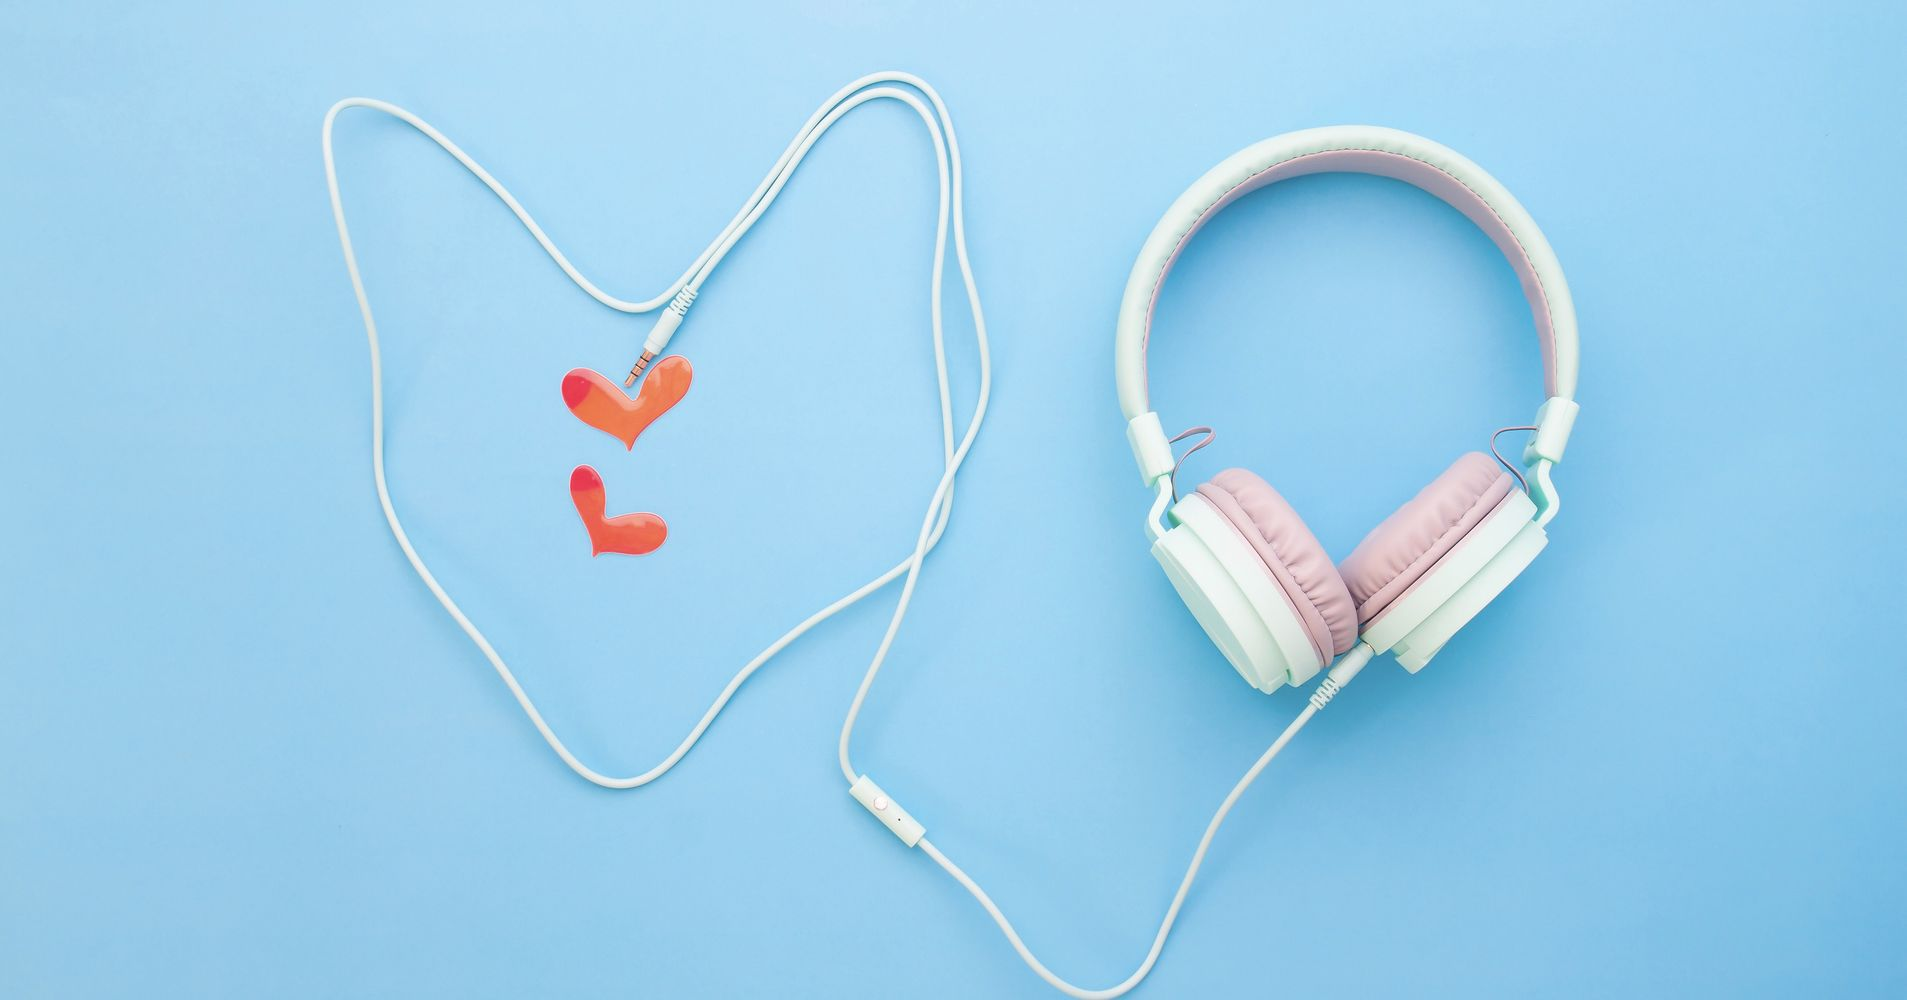 13 Podcasts About Love And Sex To Spice Up Your Commute